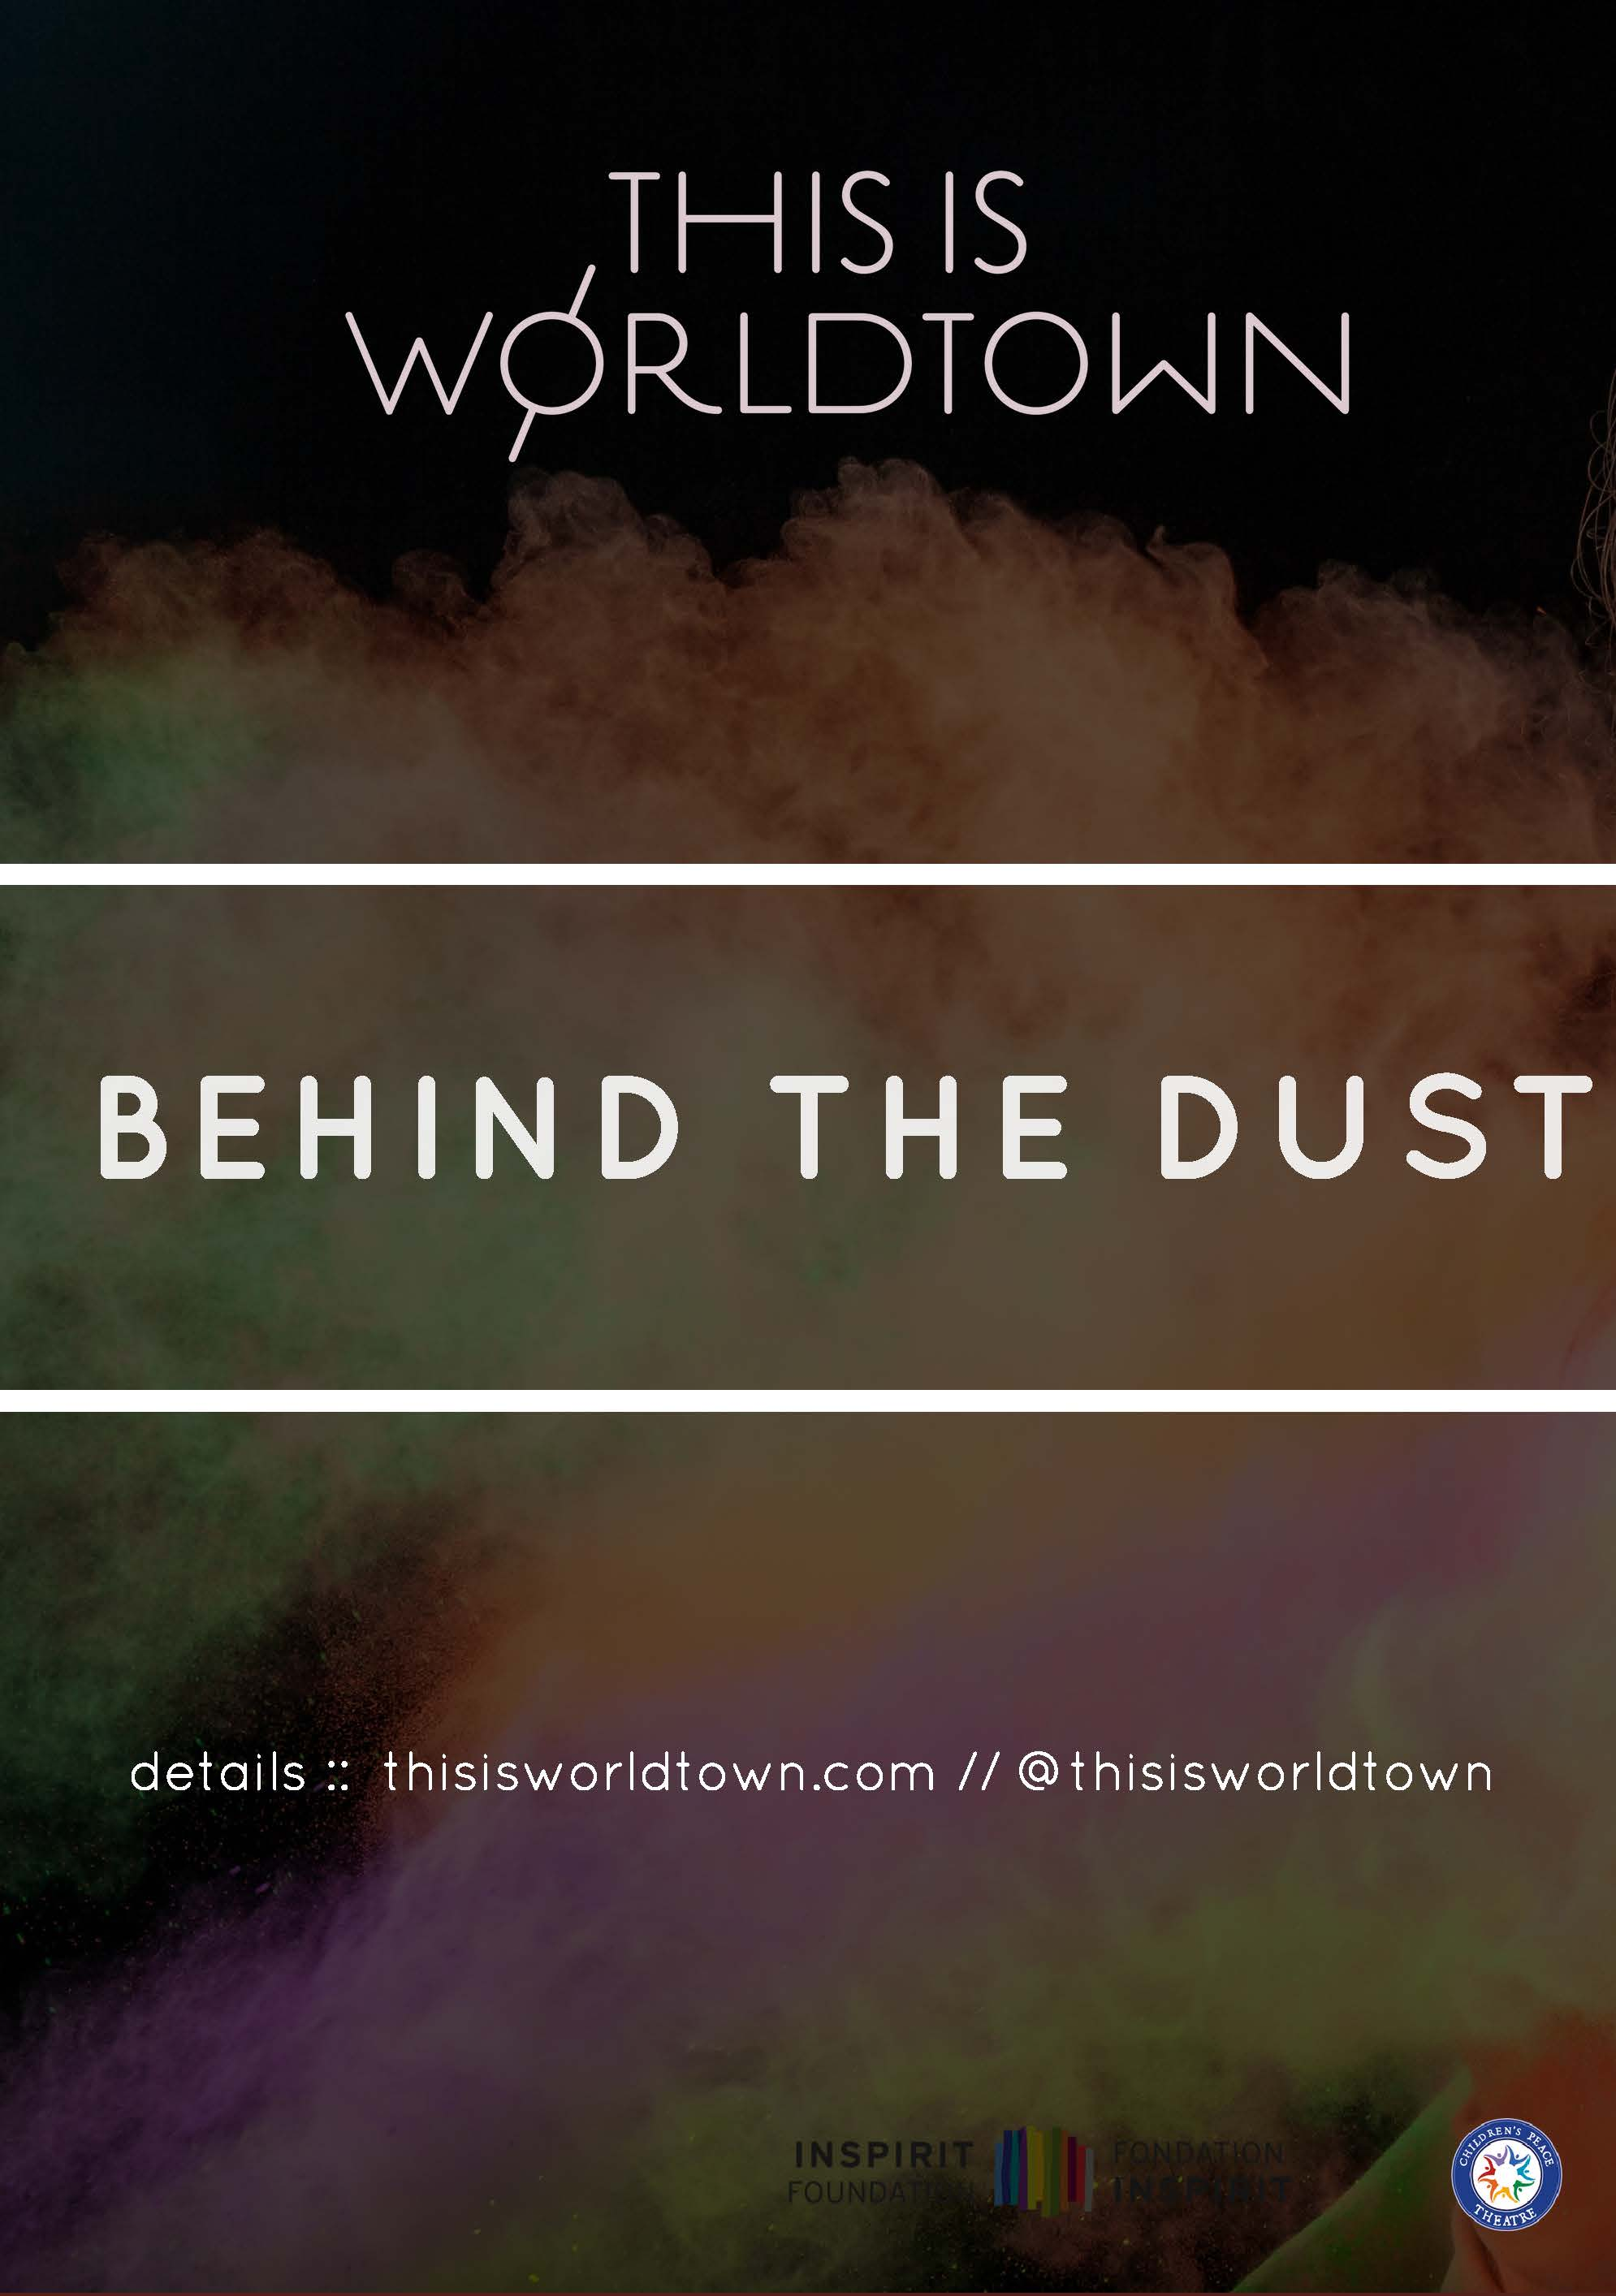 Call for Submissions: Behind the Dust - this is worldtown